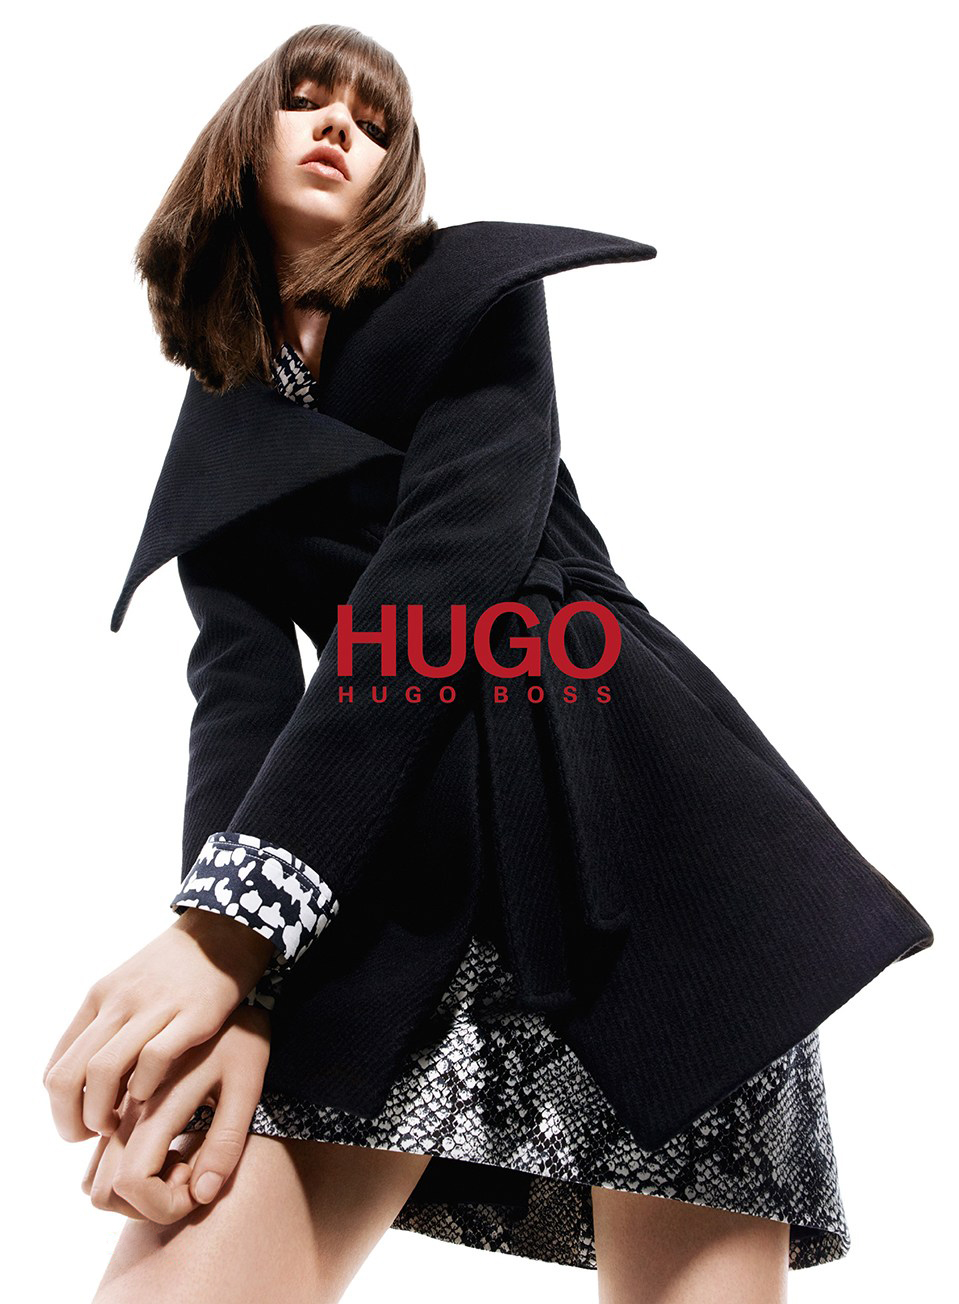 grace-hartzel-by-daniel-sannwald-for-hugo-by-hugo-boss-fallwinter-2015-2016-1